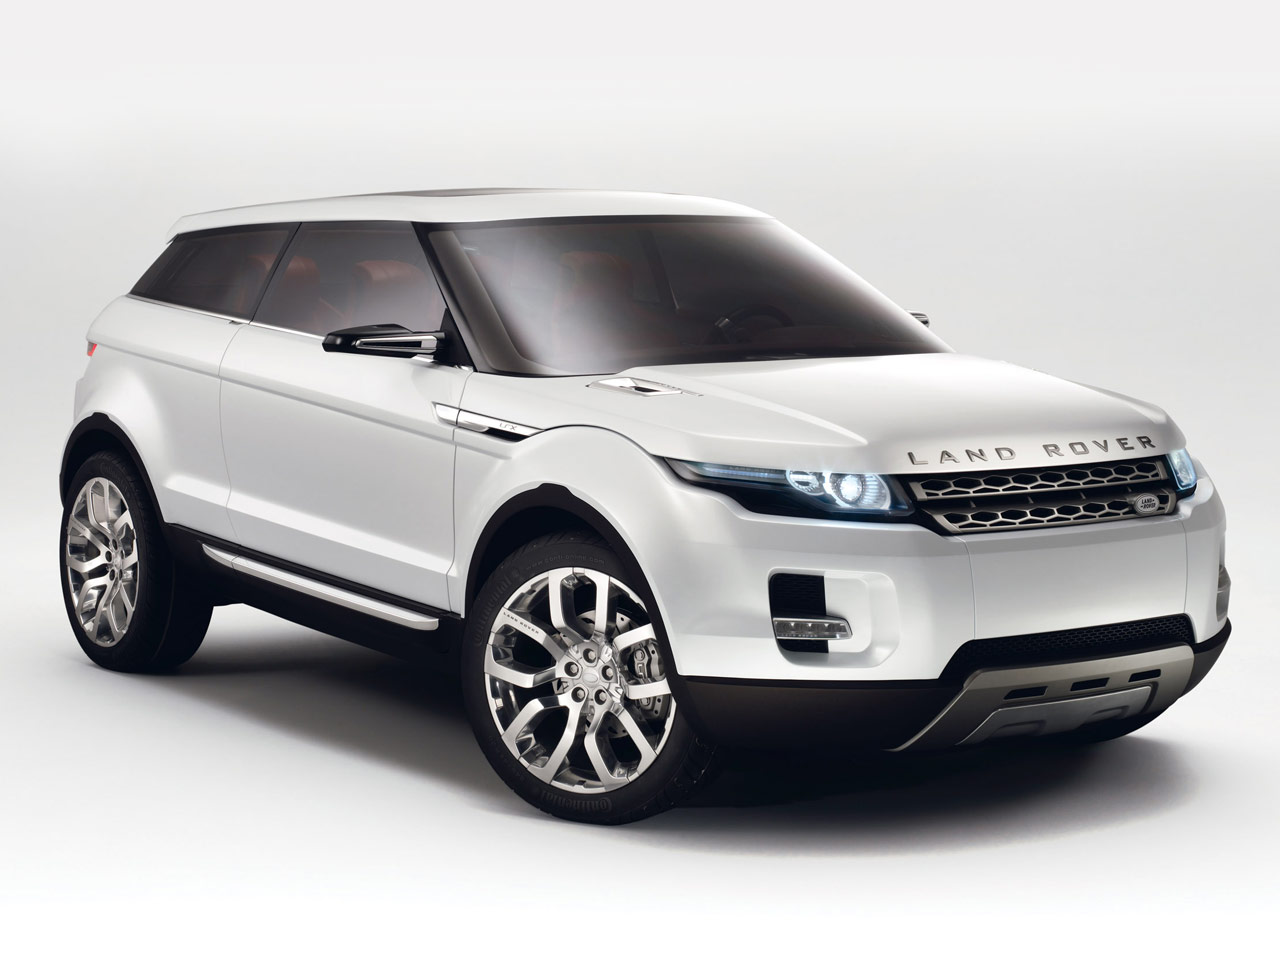 Land Rover Cars Images Land Rover LRX Concept